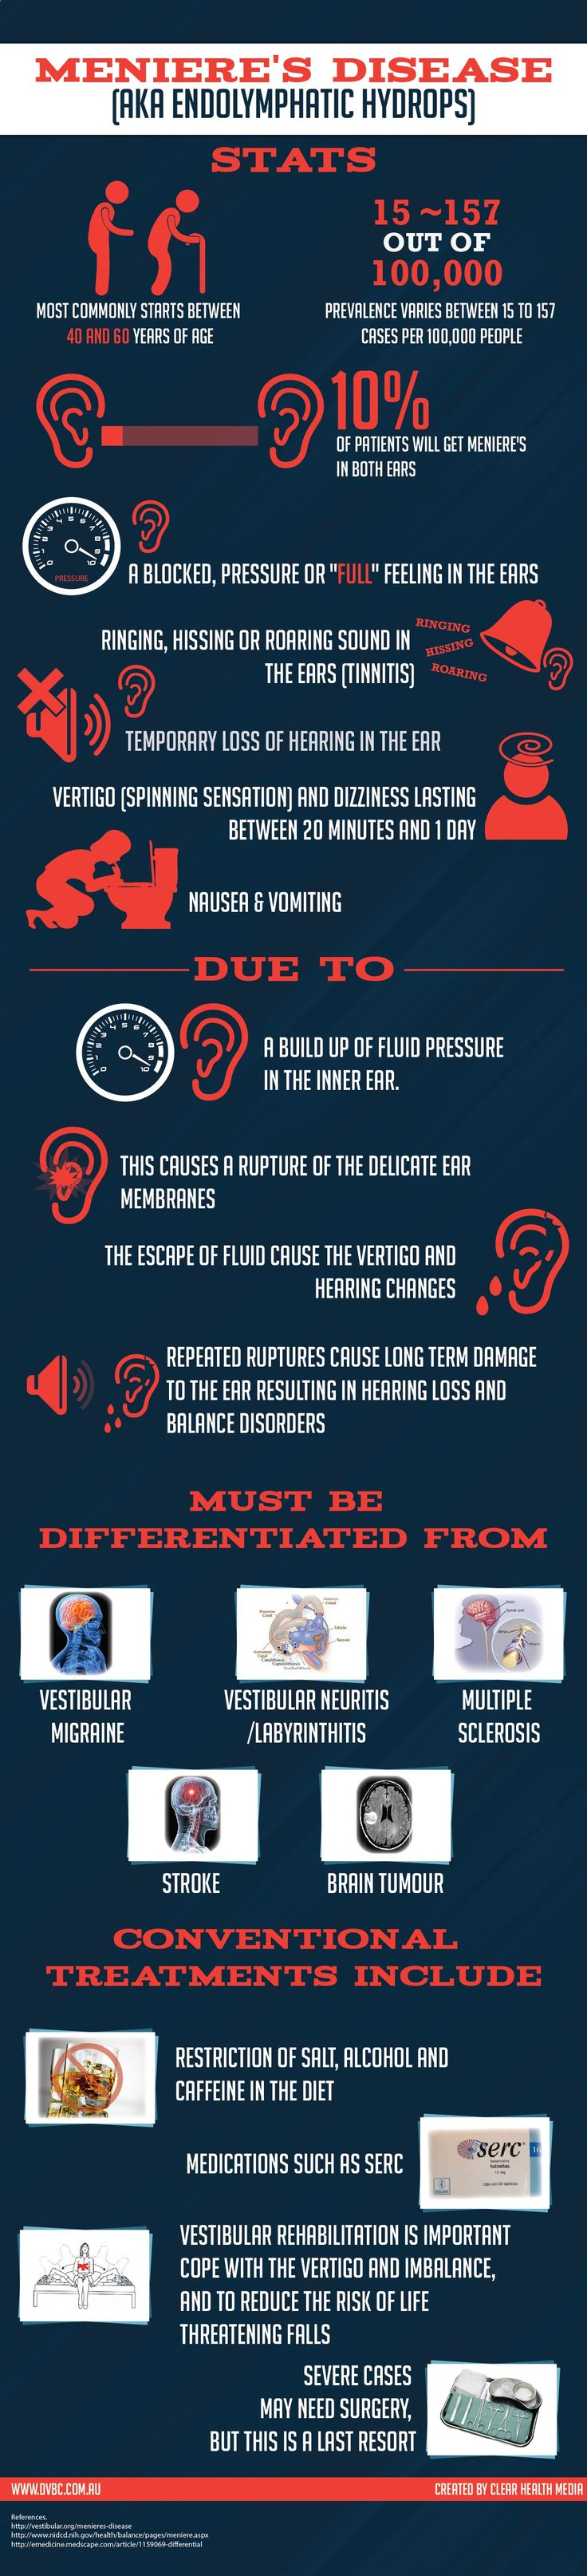 Menieres disease is a common cause of vertigo and dizziness. We created this infographics to highlight the most common symptoms, cause and treatment